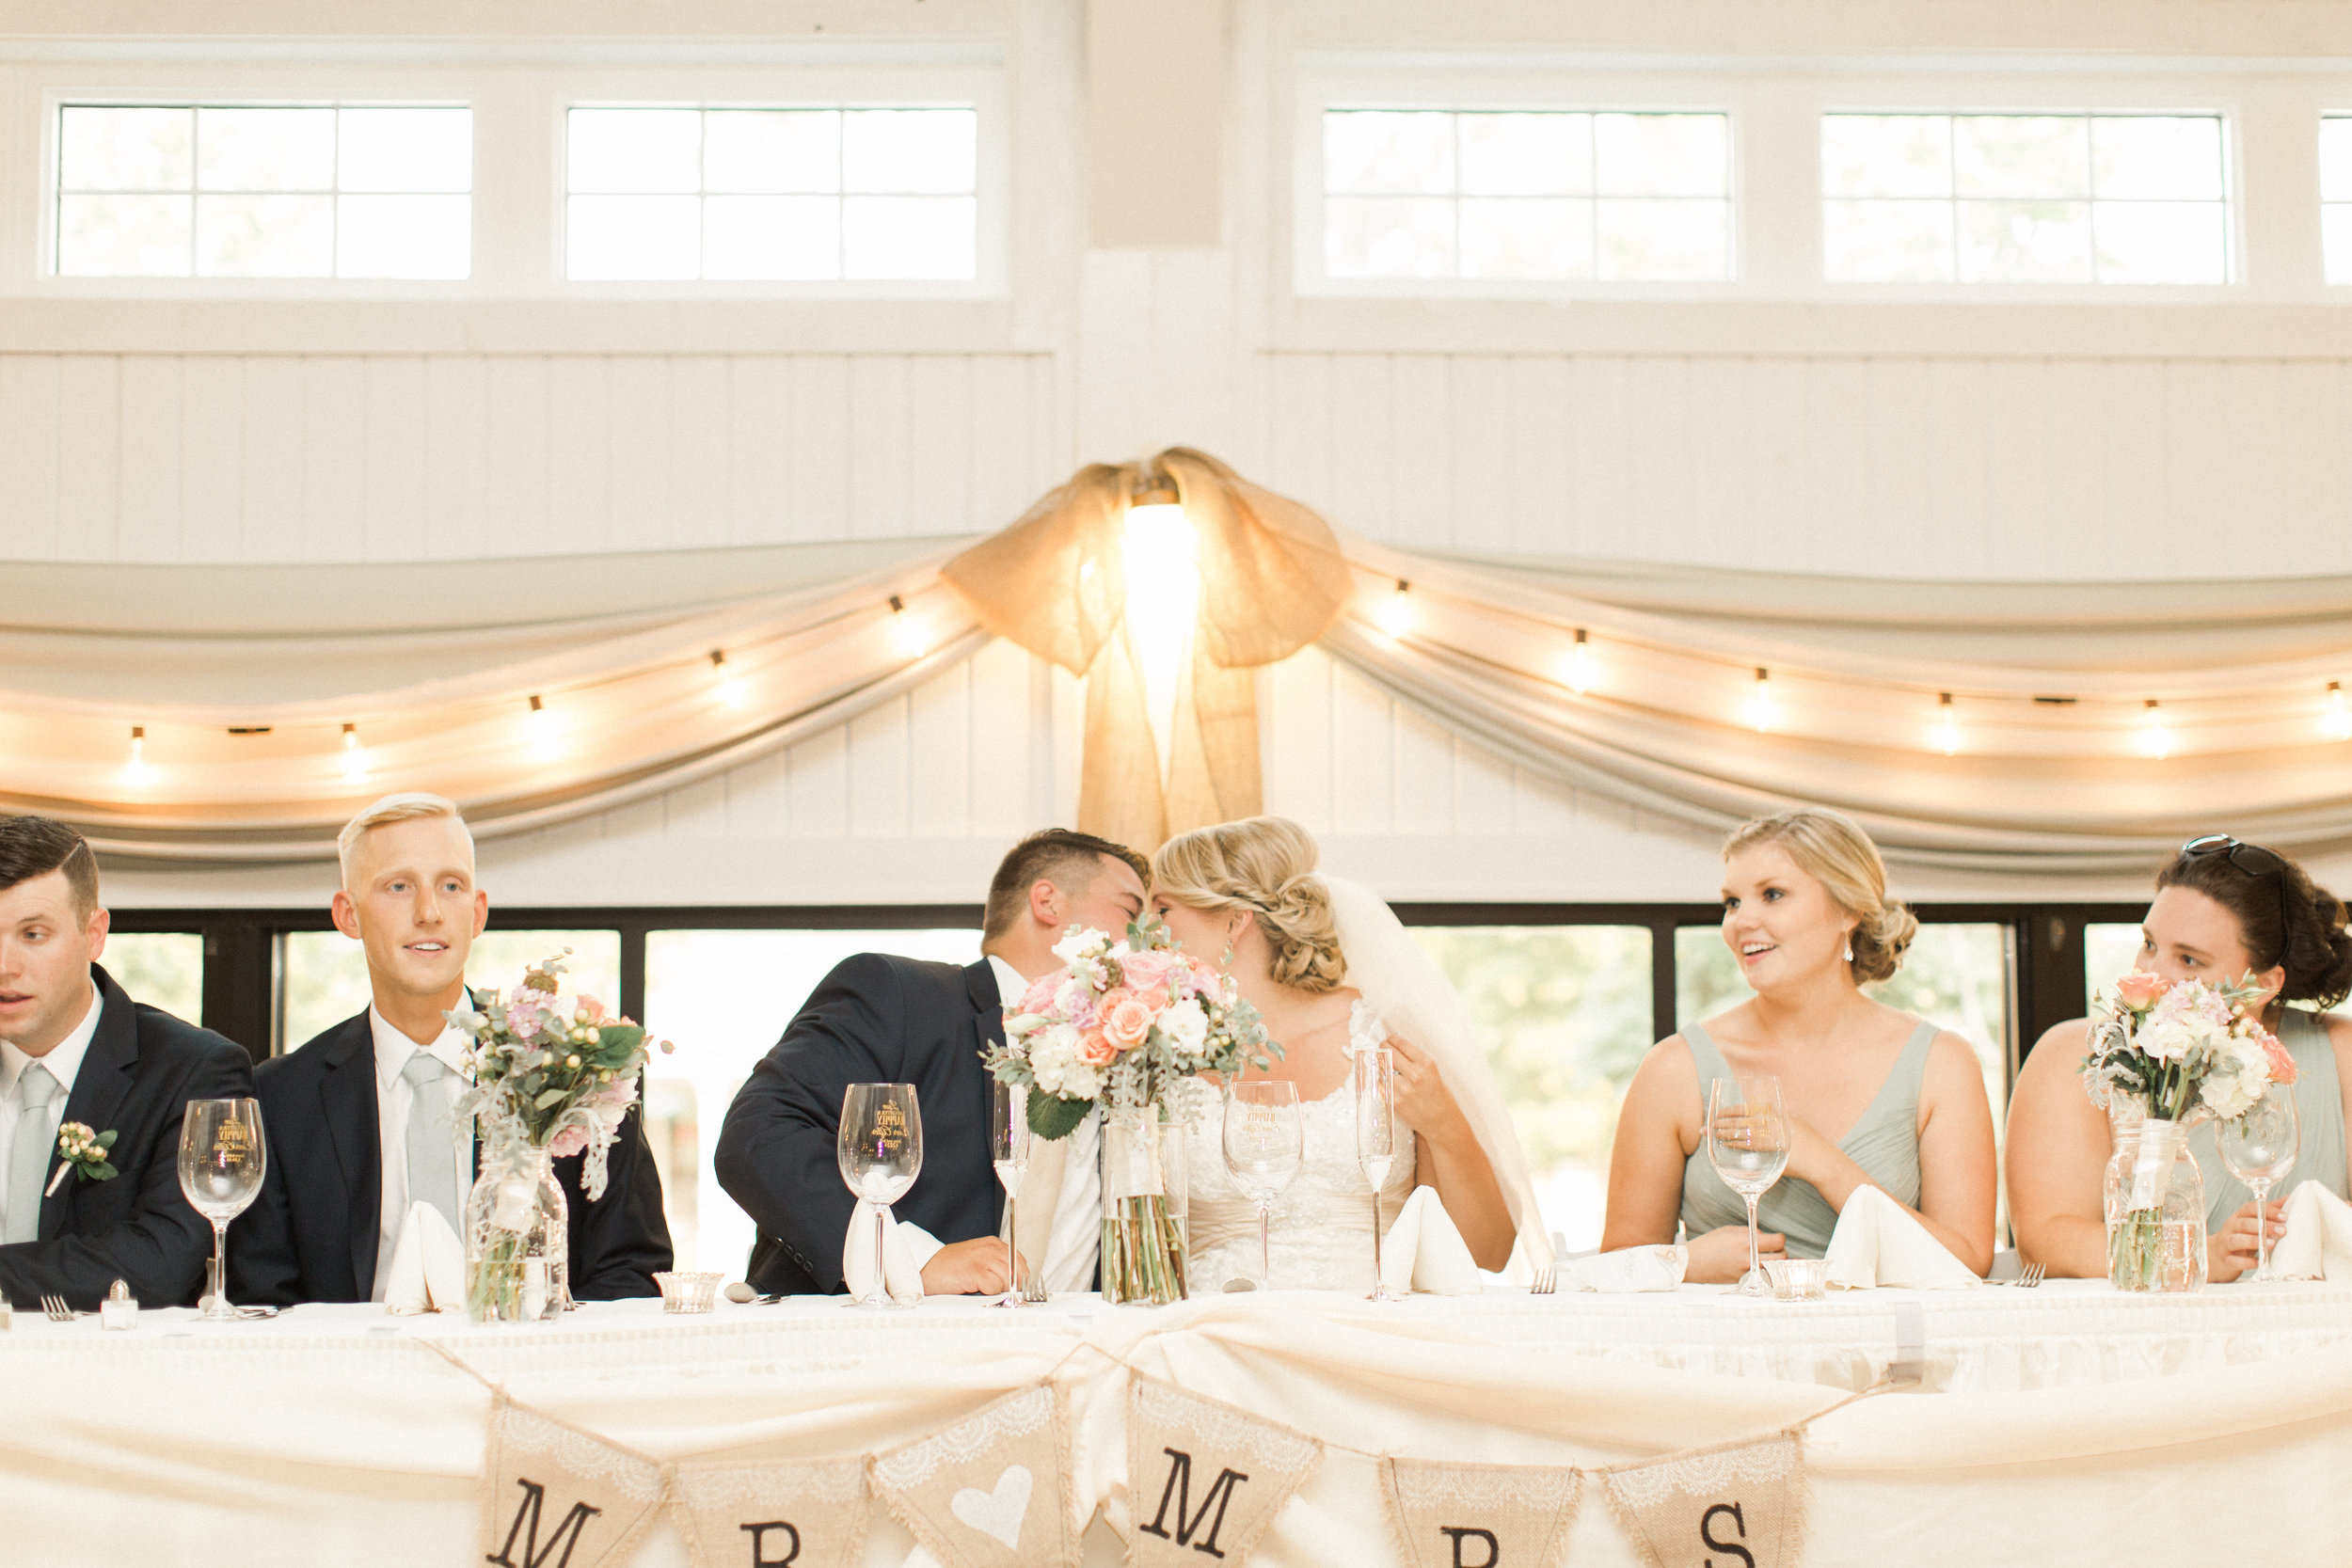 head-table-white-lights-pink-flowers-flags-bride-groom-kiss